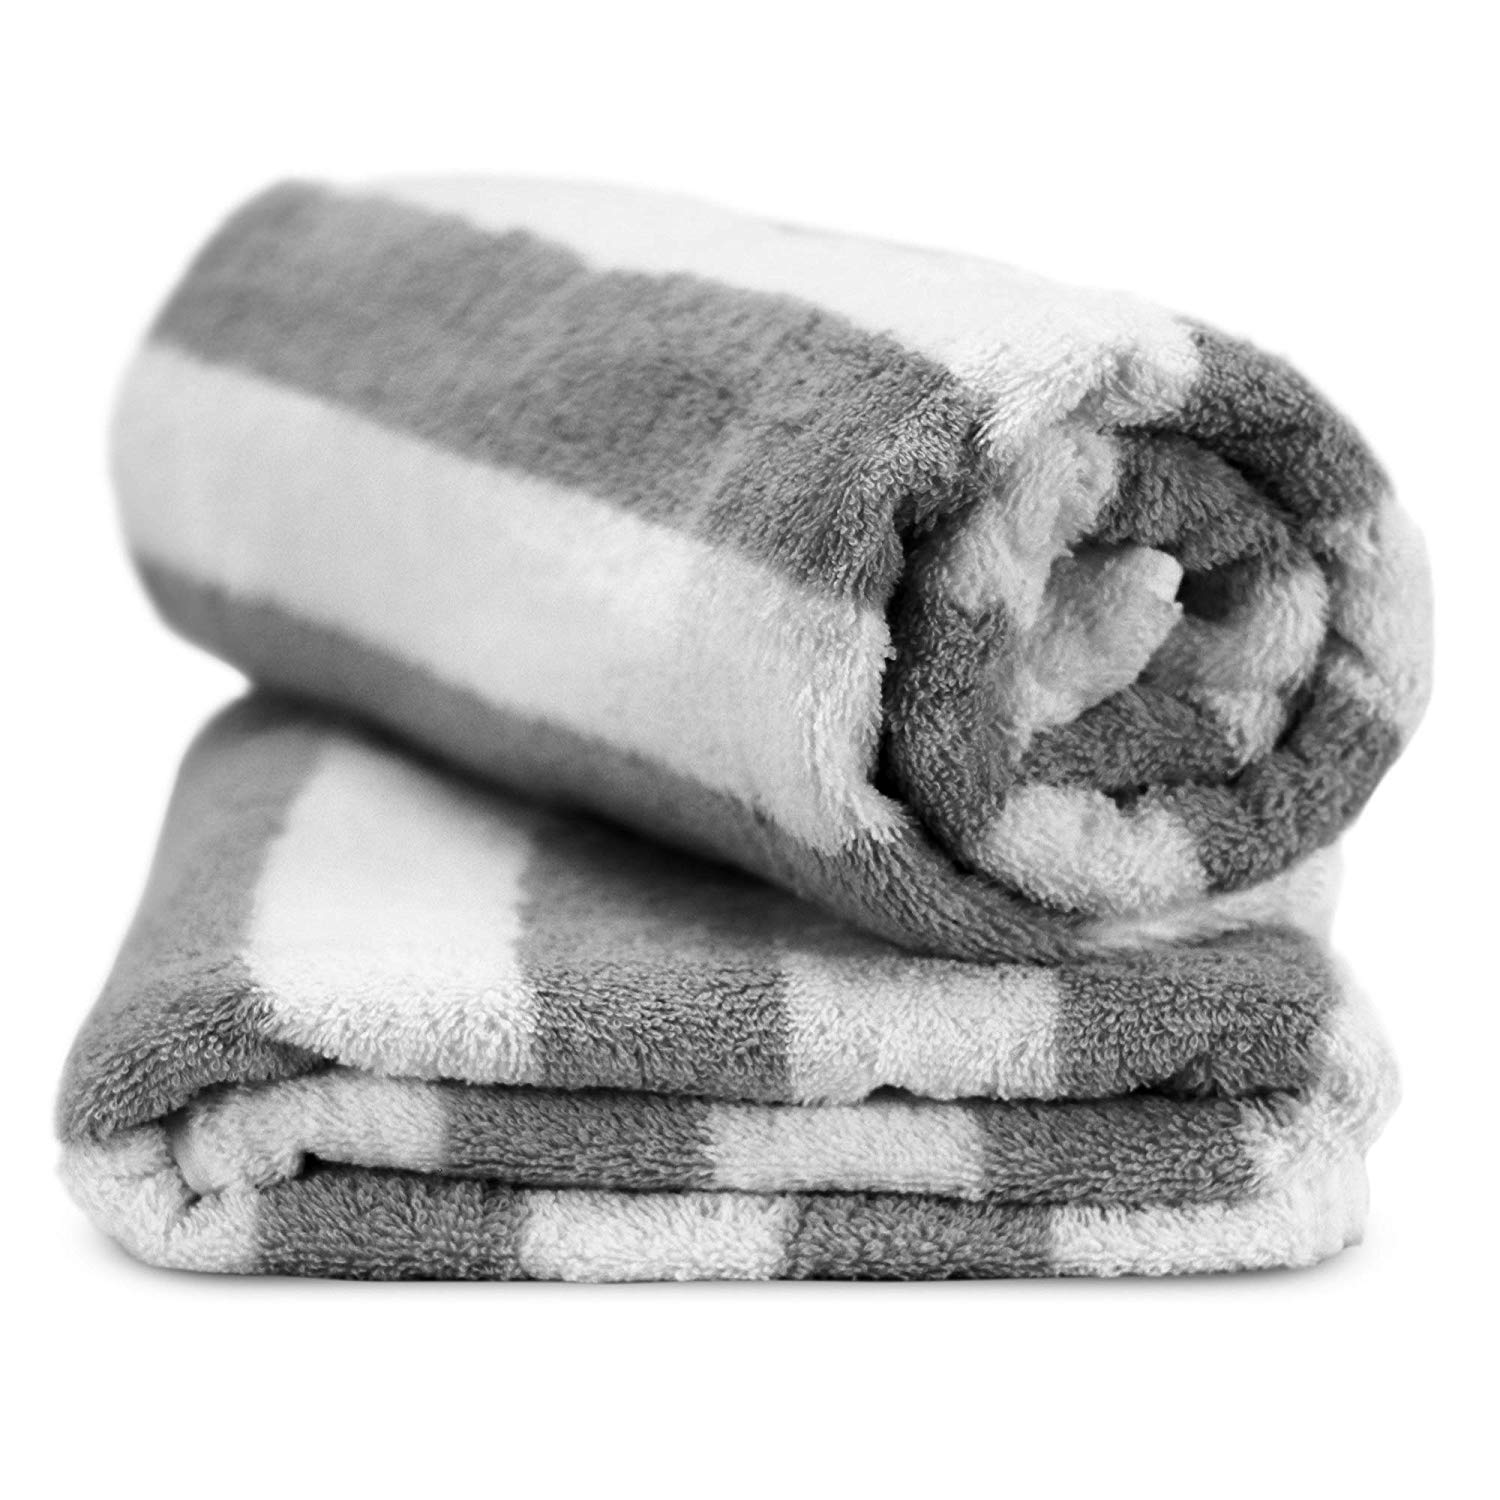 Cheap Gray Beach Towel Find Gray Beach Towel Deals On Line At